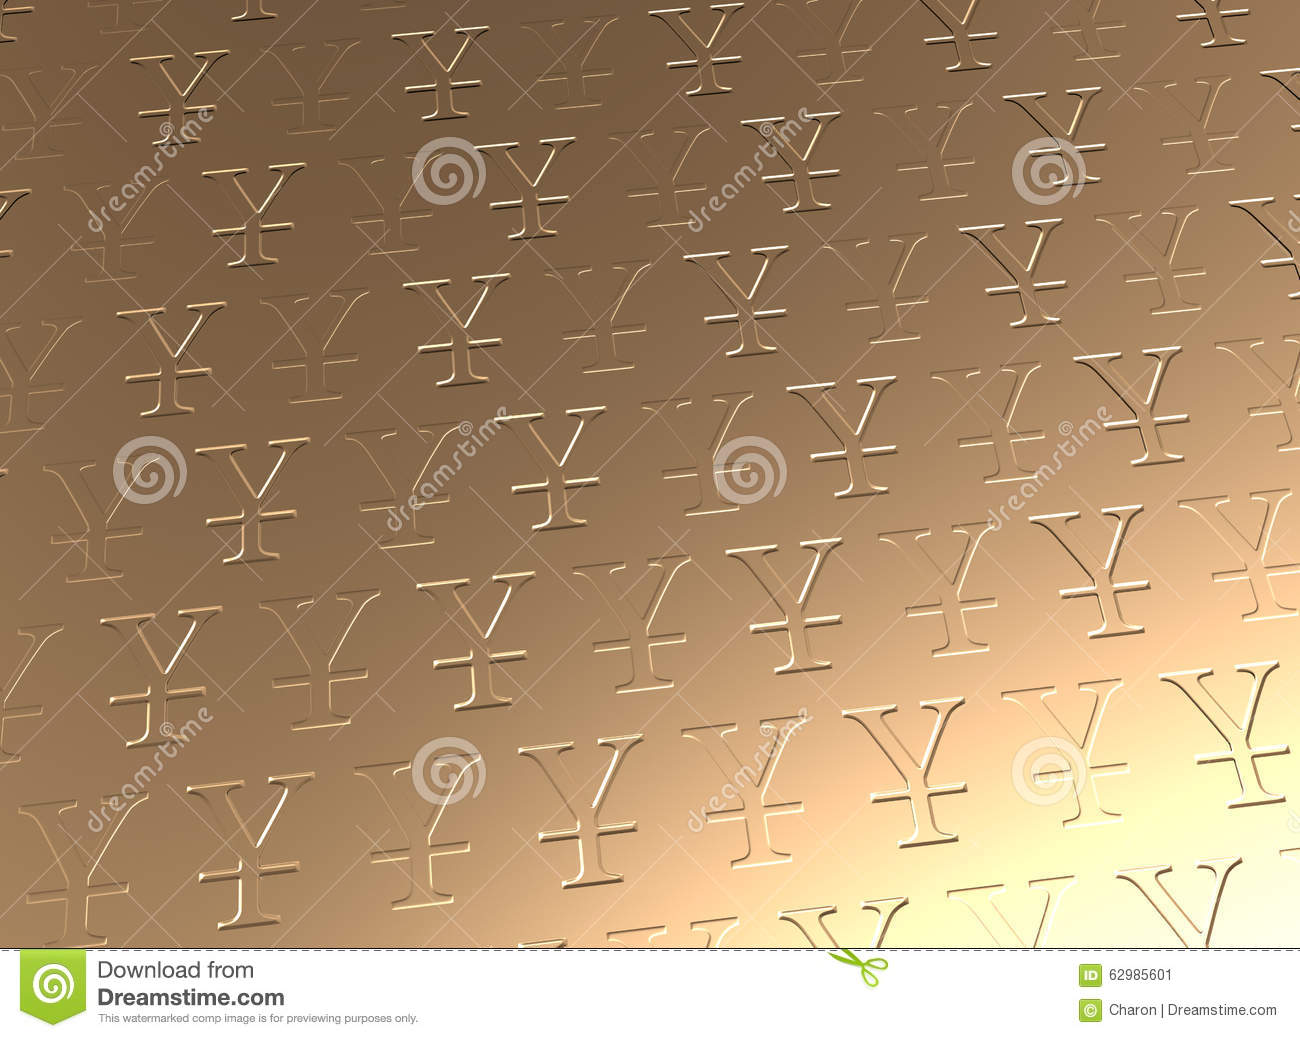 Chinese yuen currency golden texture stock illustration chinese yuen currency golden texture biocorpaavc Gallery